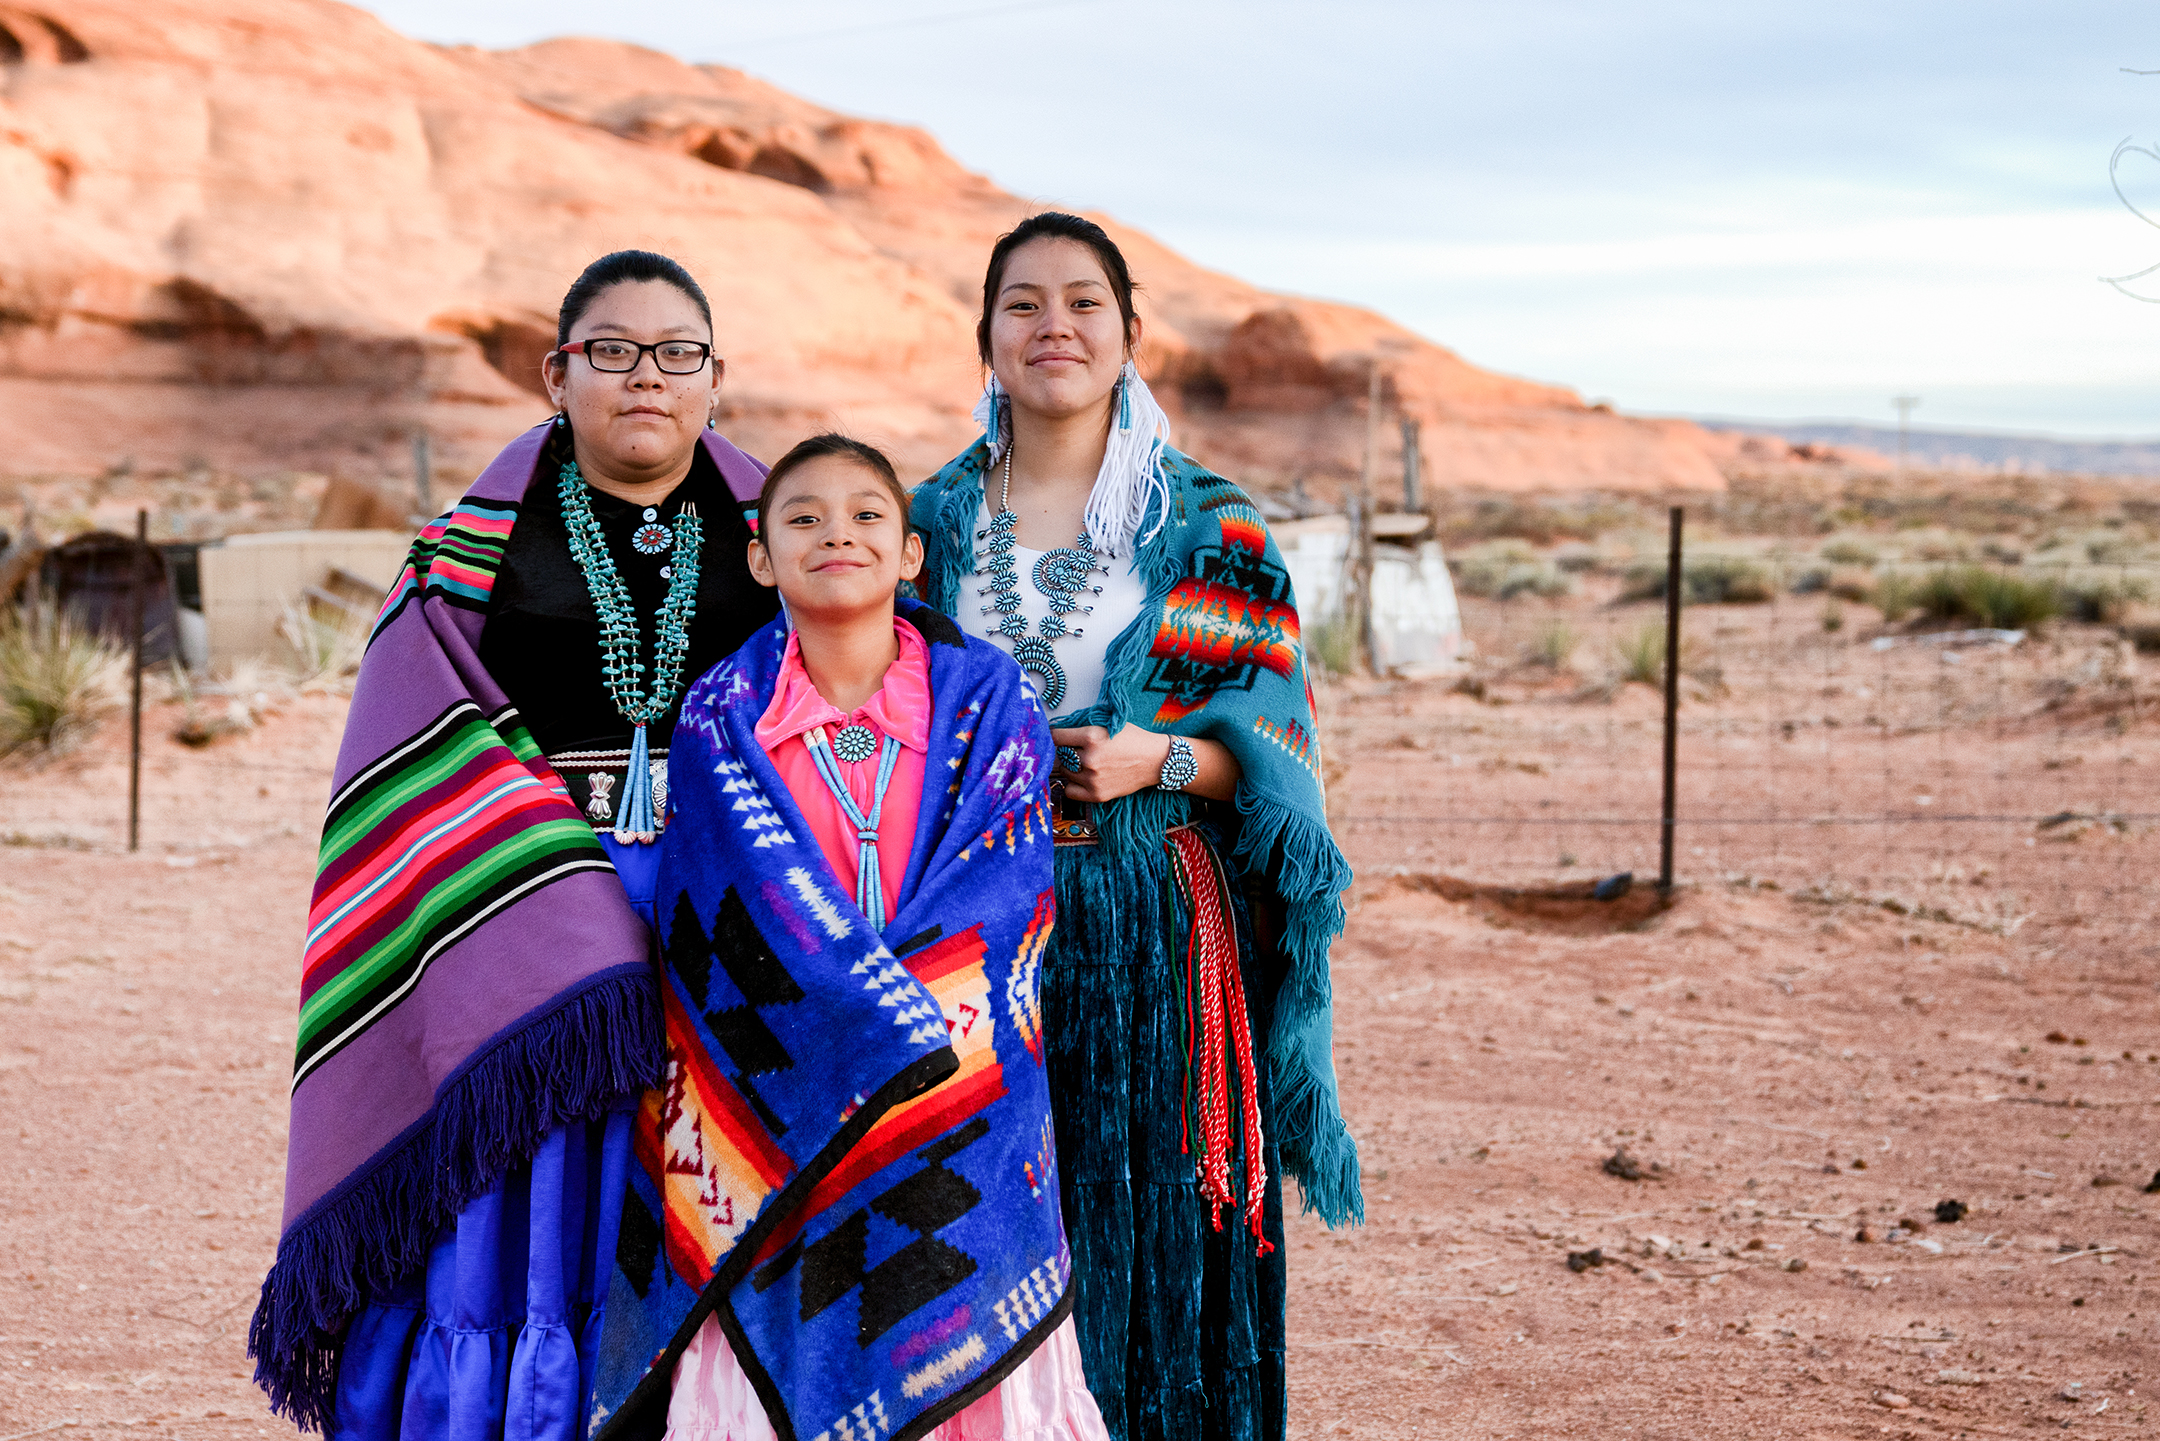 Photo of three young Native American women of various ages, smiling while wearing traditional Navajo dress